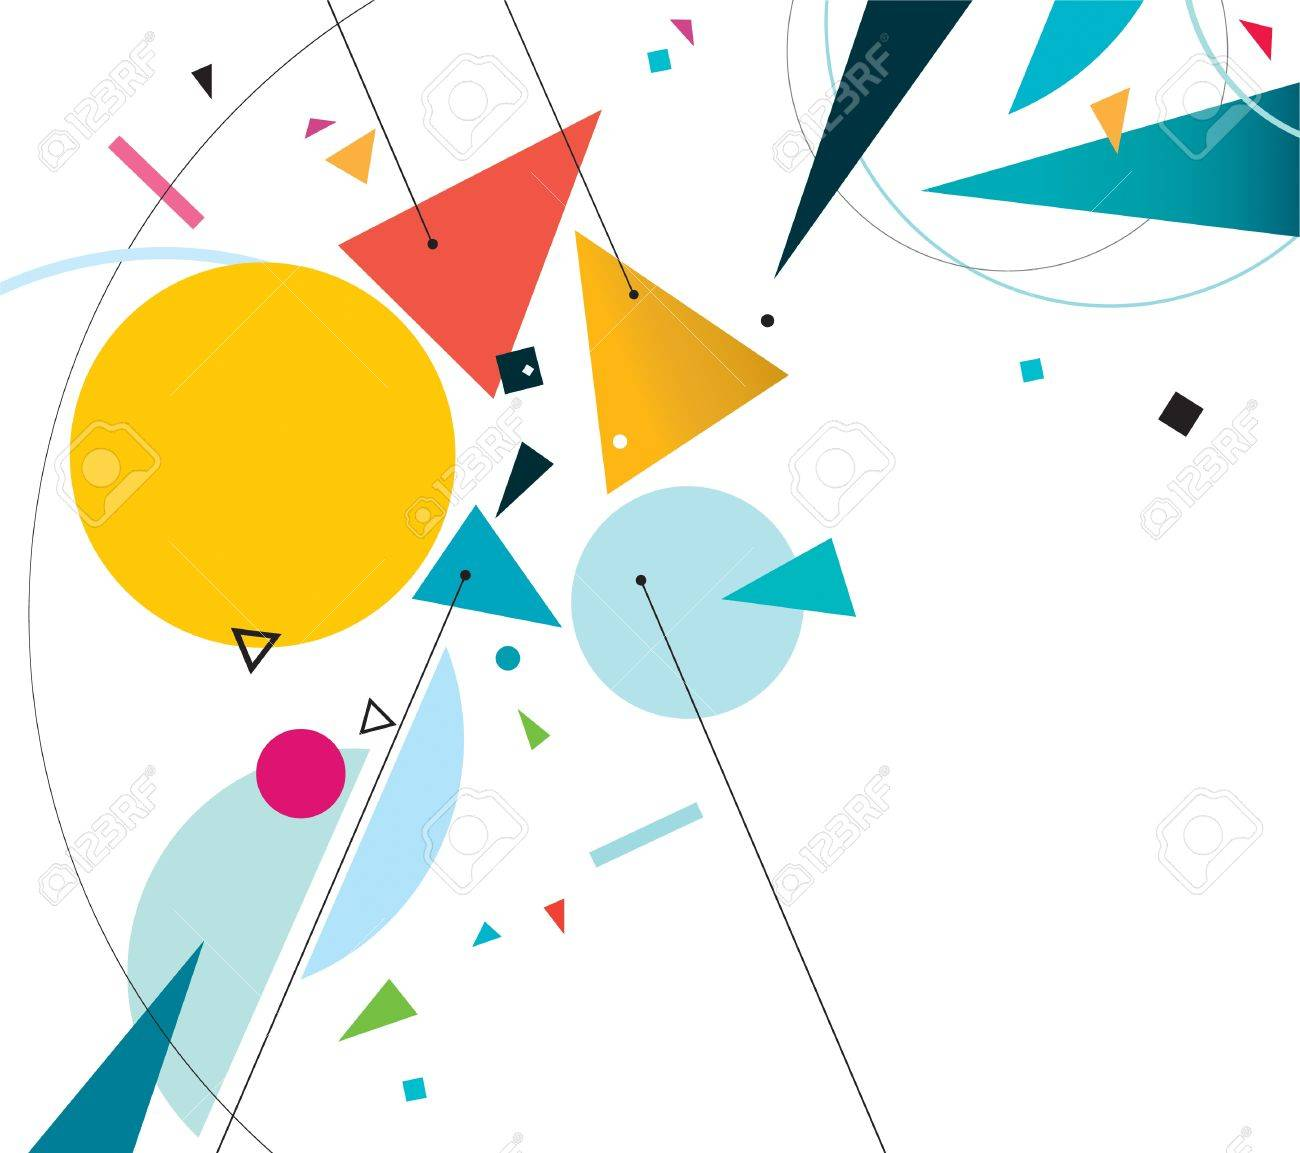 Vector illustration abstract background - 20274558